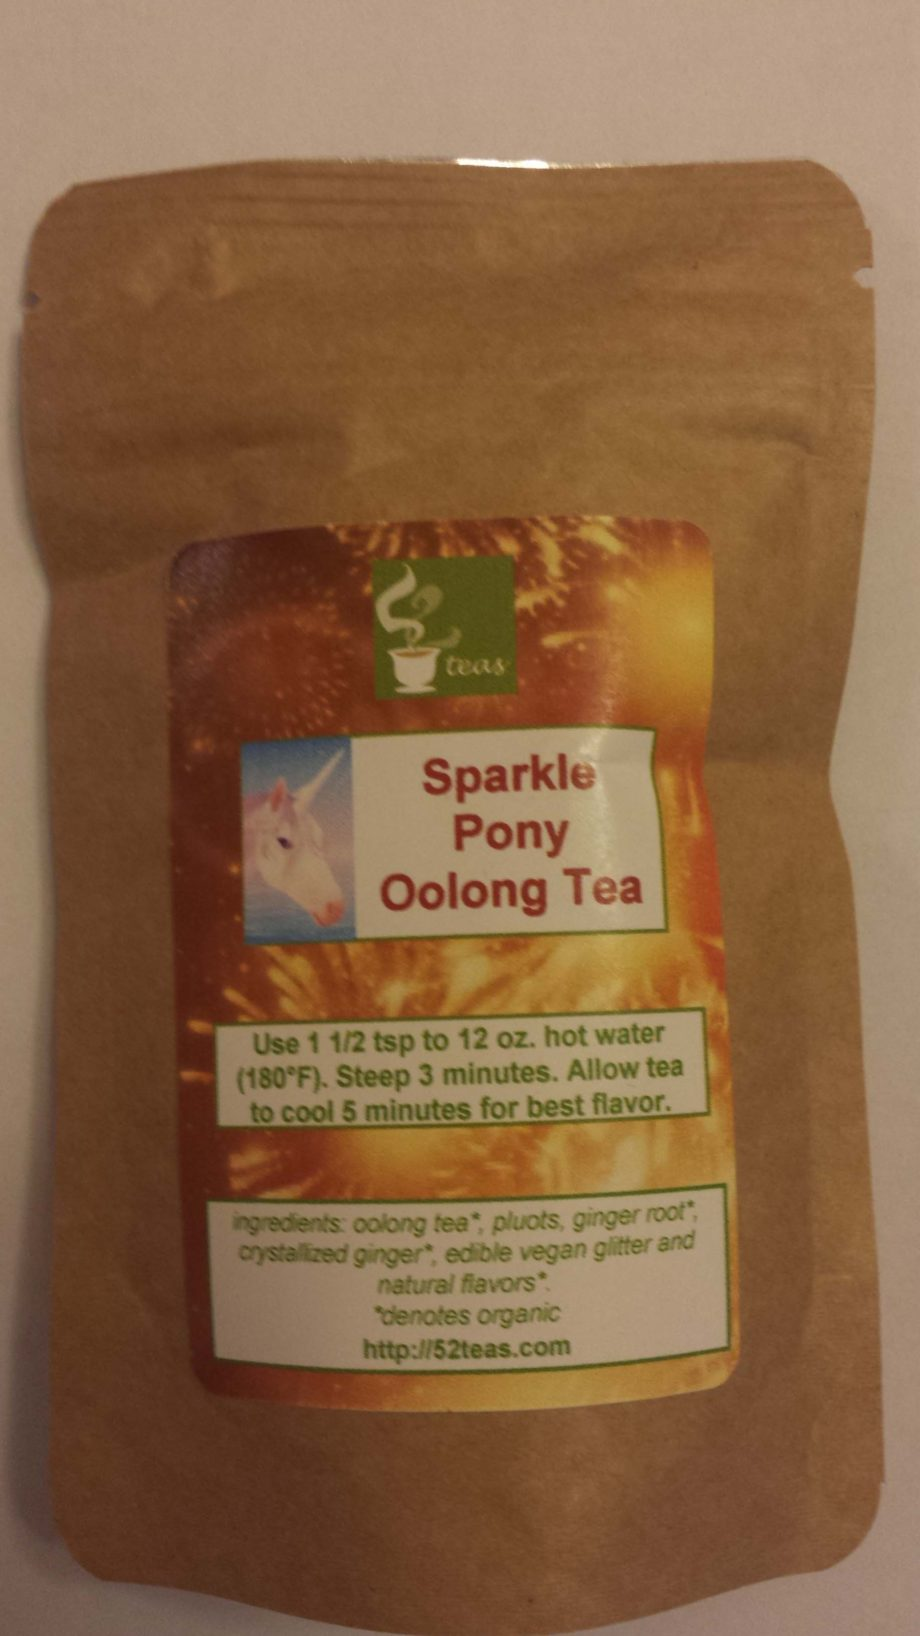 52Teas_sparkle_pony_oolong_label